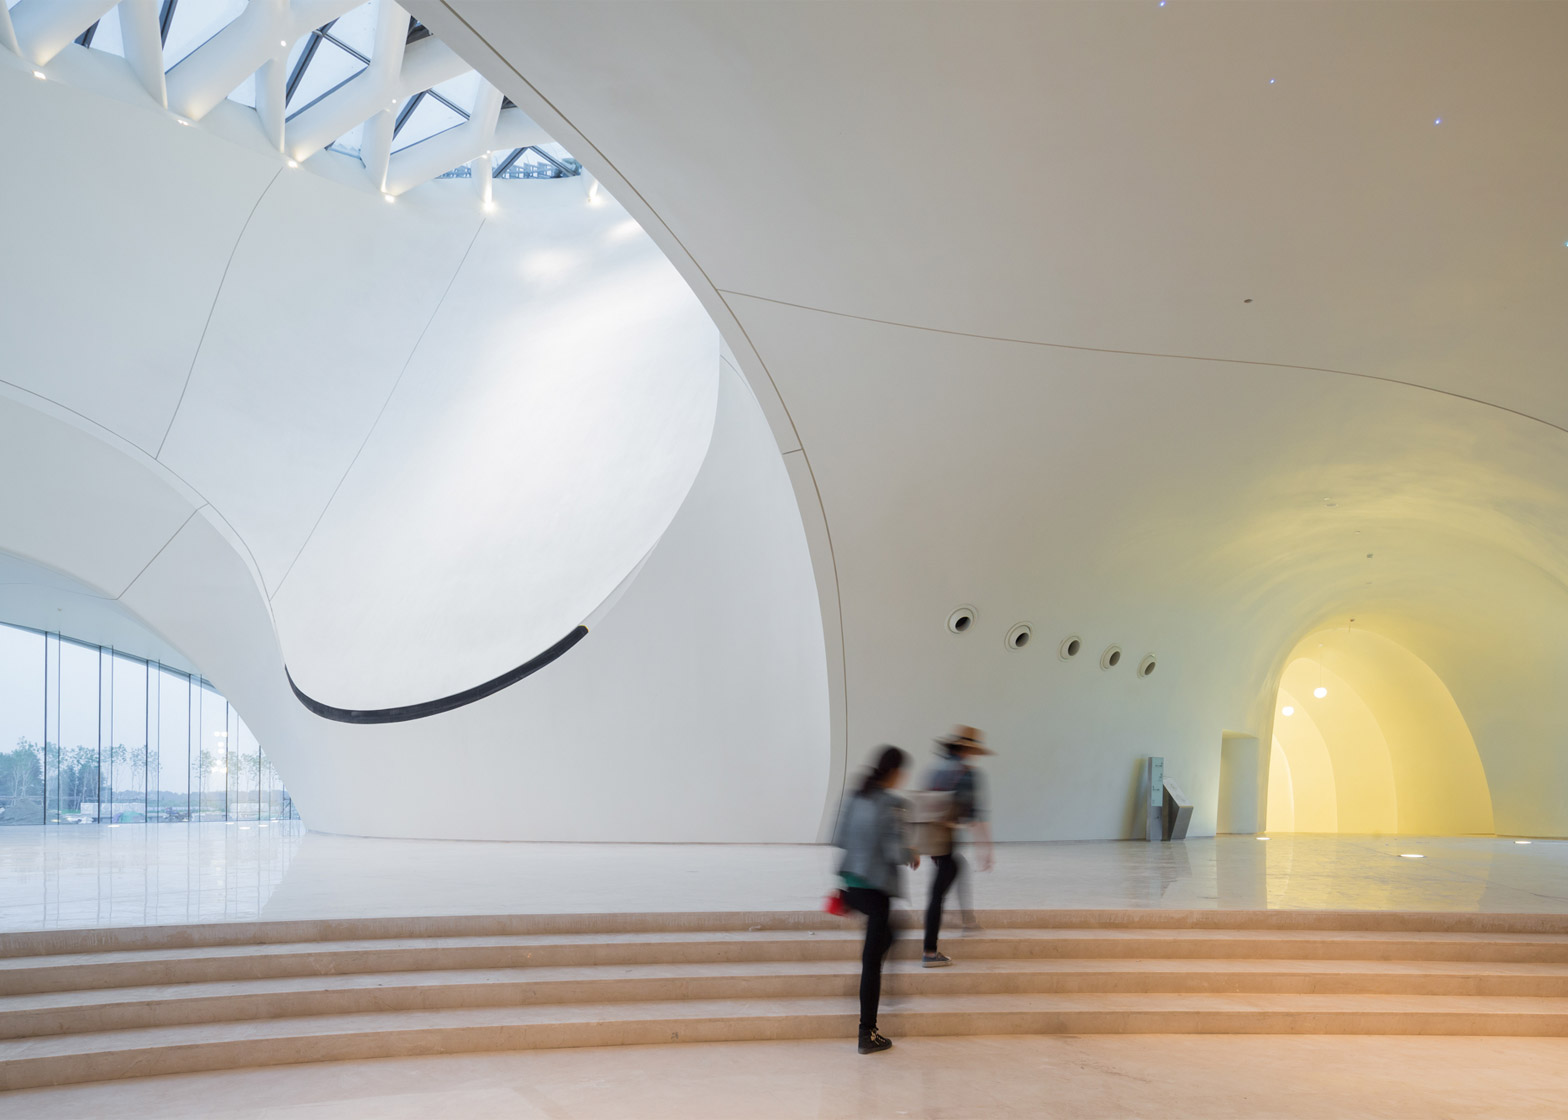 MAD's Harbin Opera House photographed by Iwan Baan